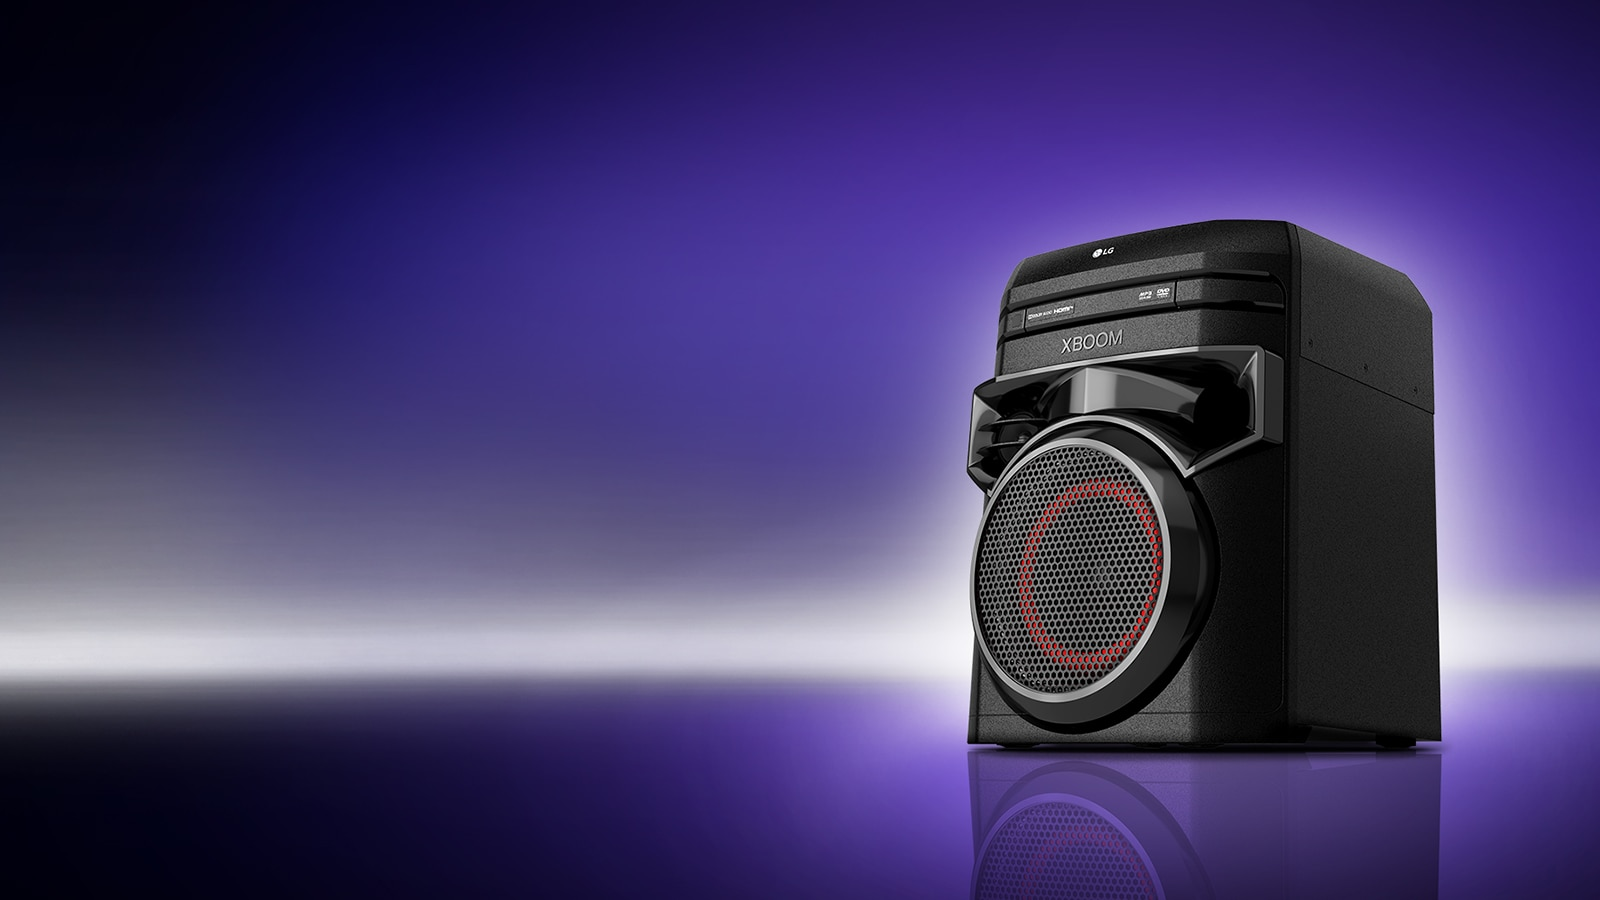 A low angle view of the right side of LG XBOOM against a purple background.